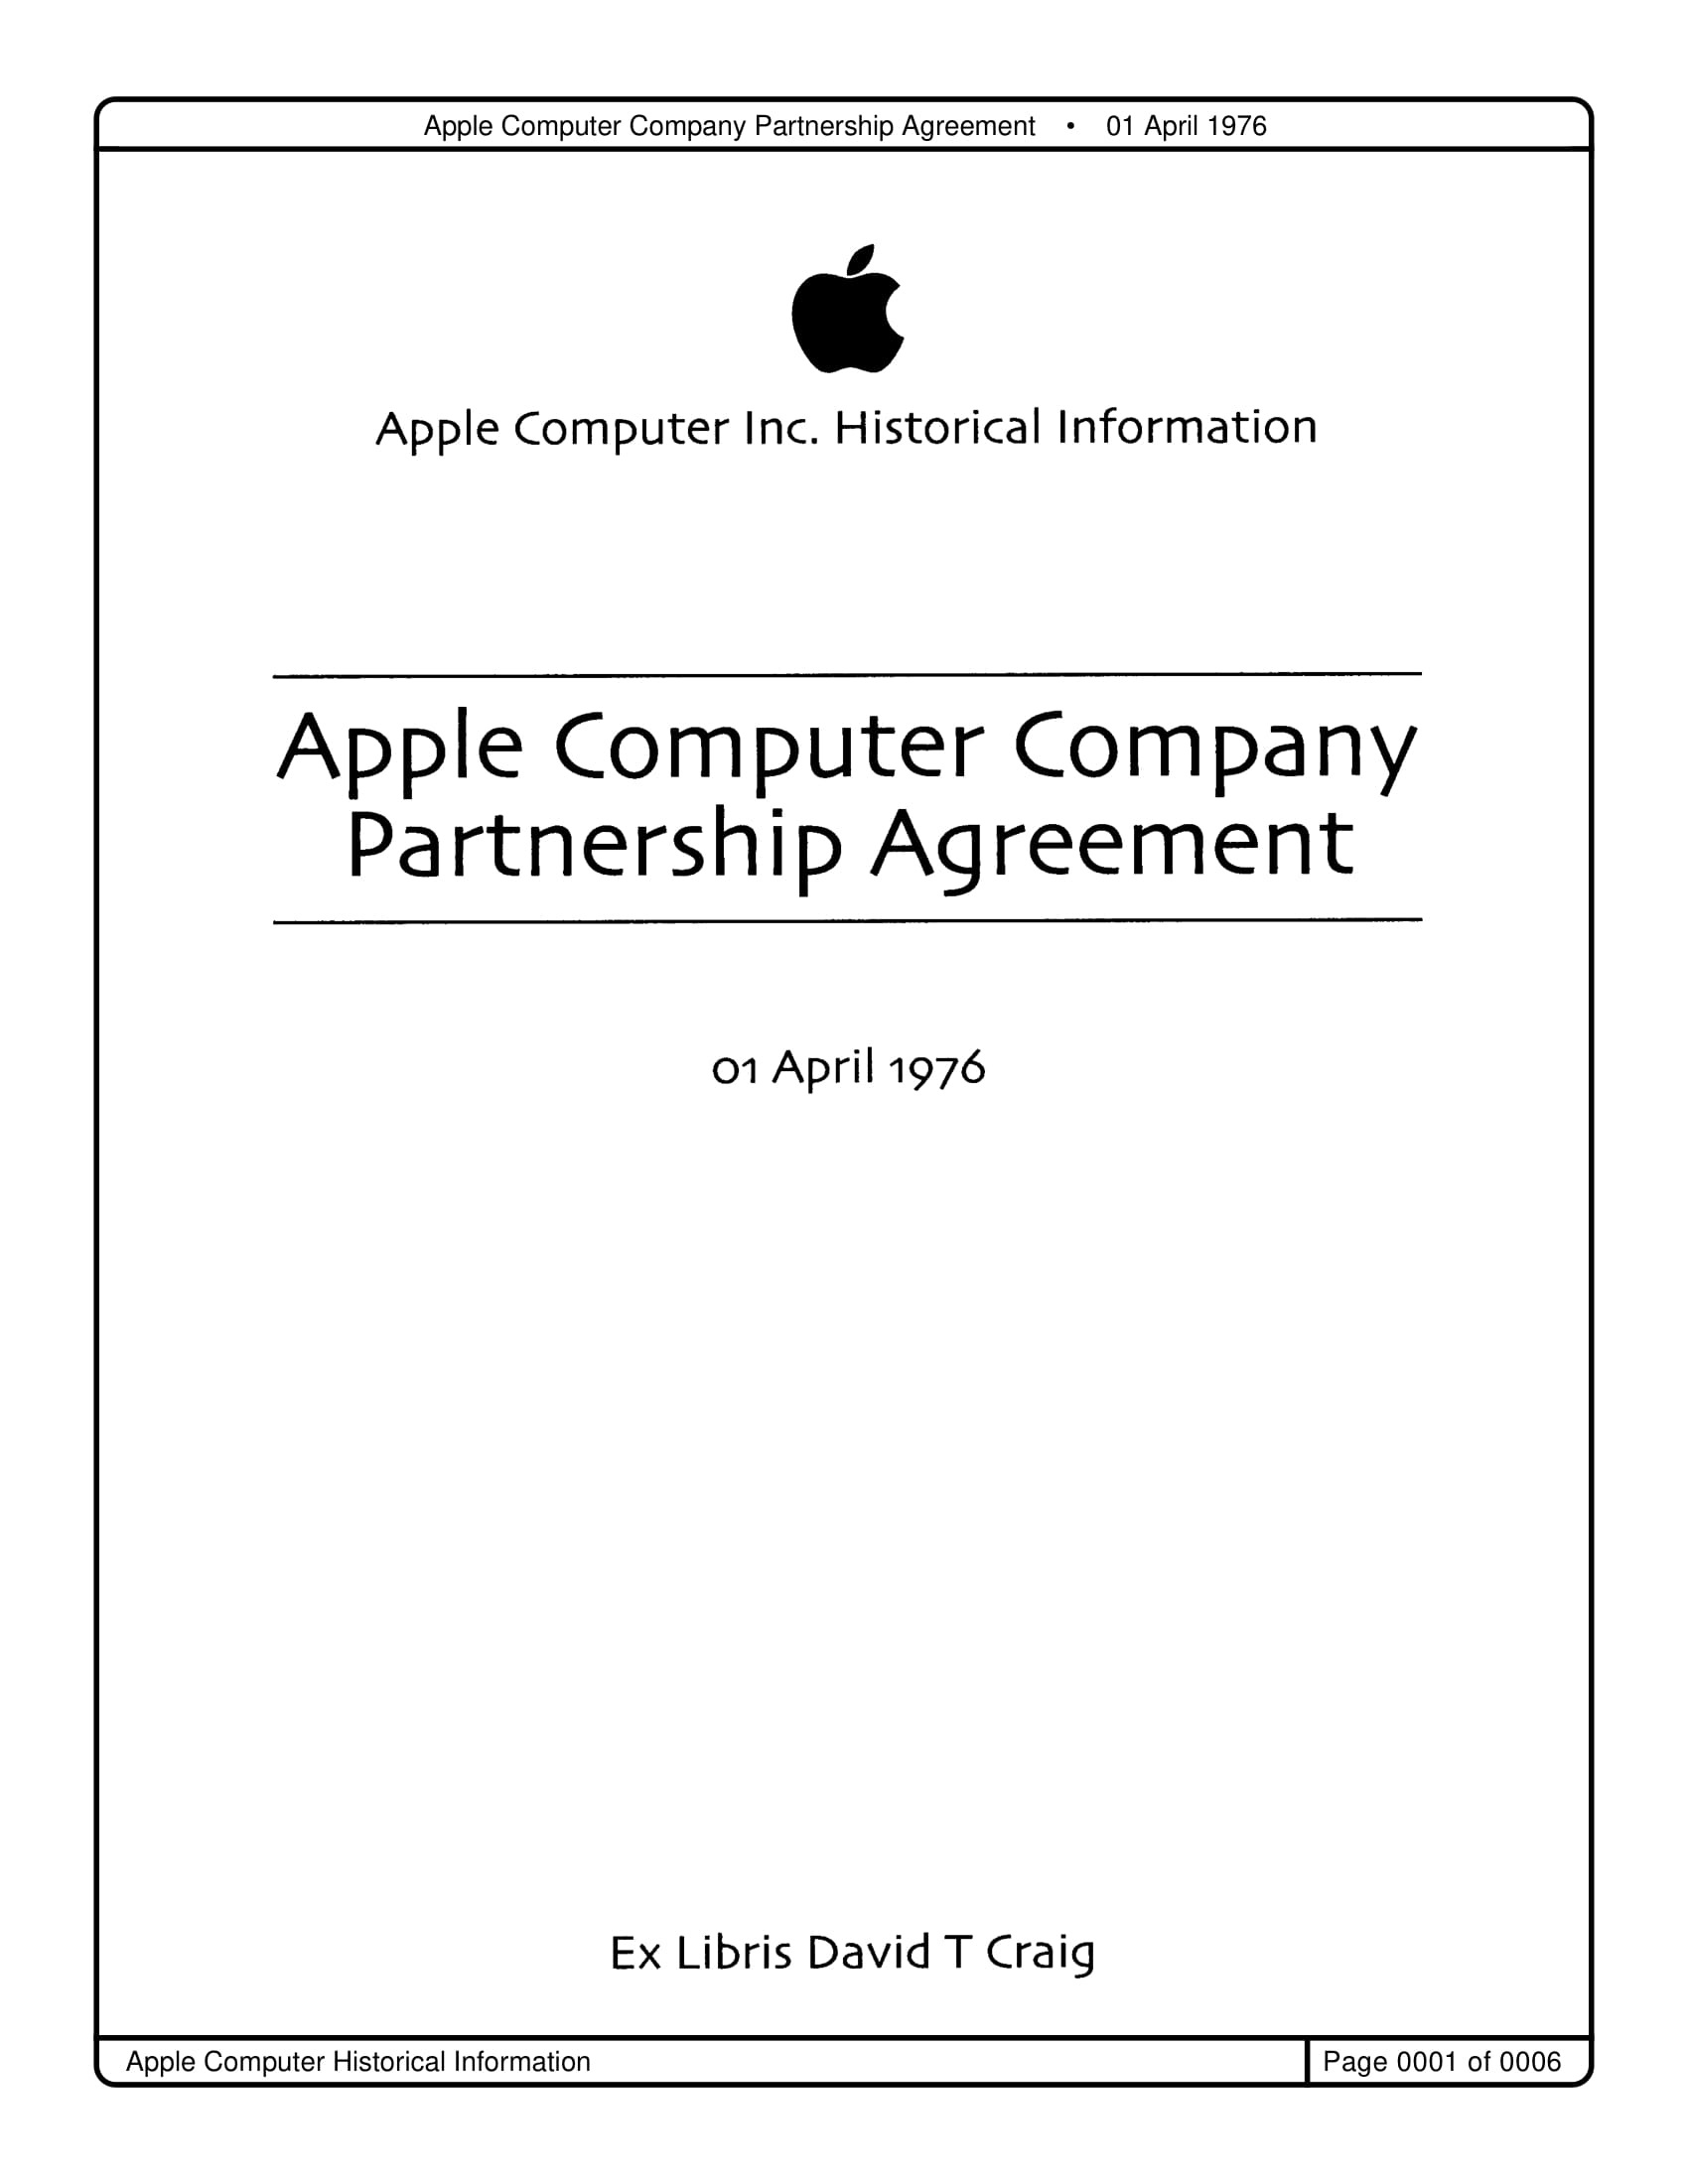 apple computer company partnership agreement example1